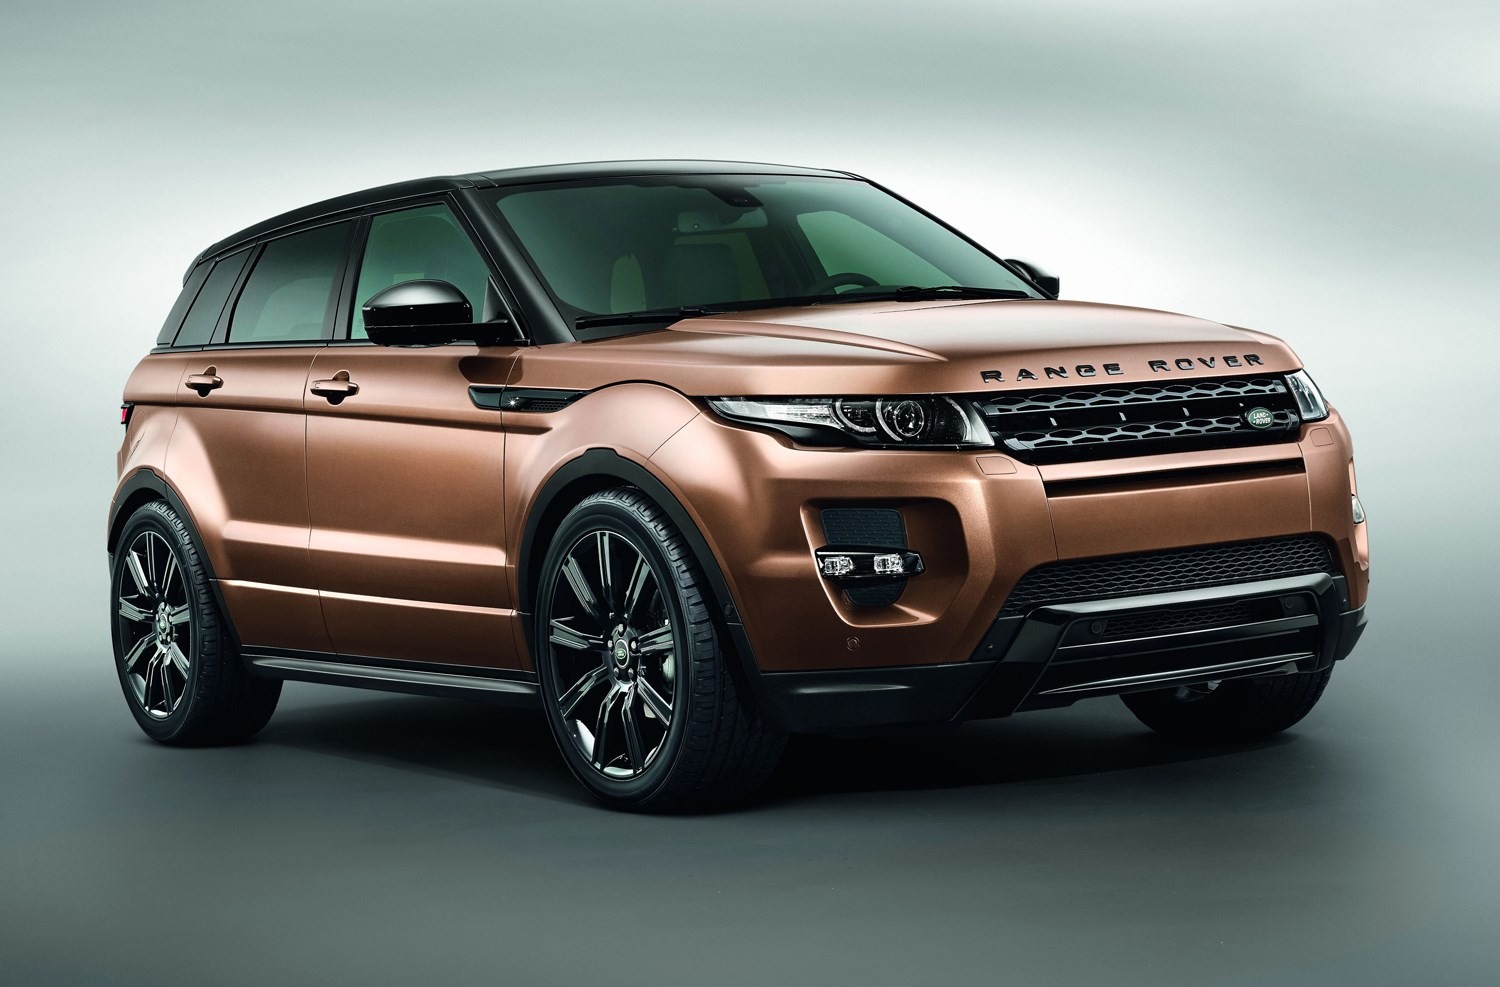 range rover evoque review features safety and. Black Bedroom Furniture Sets. Home Design Ideas